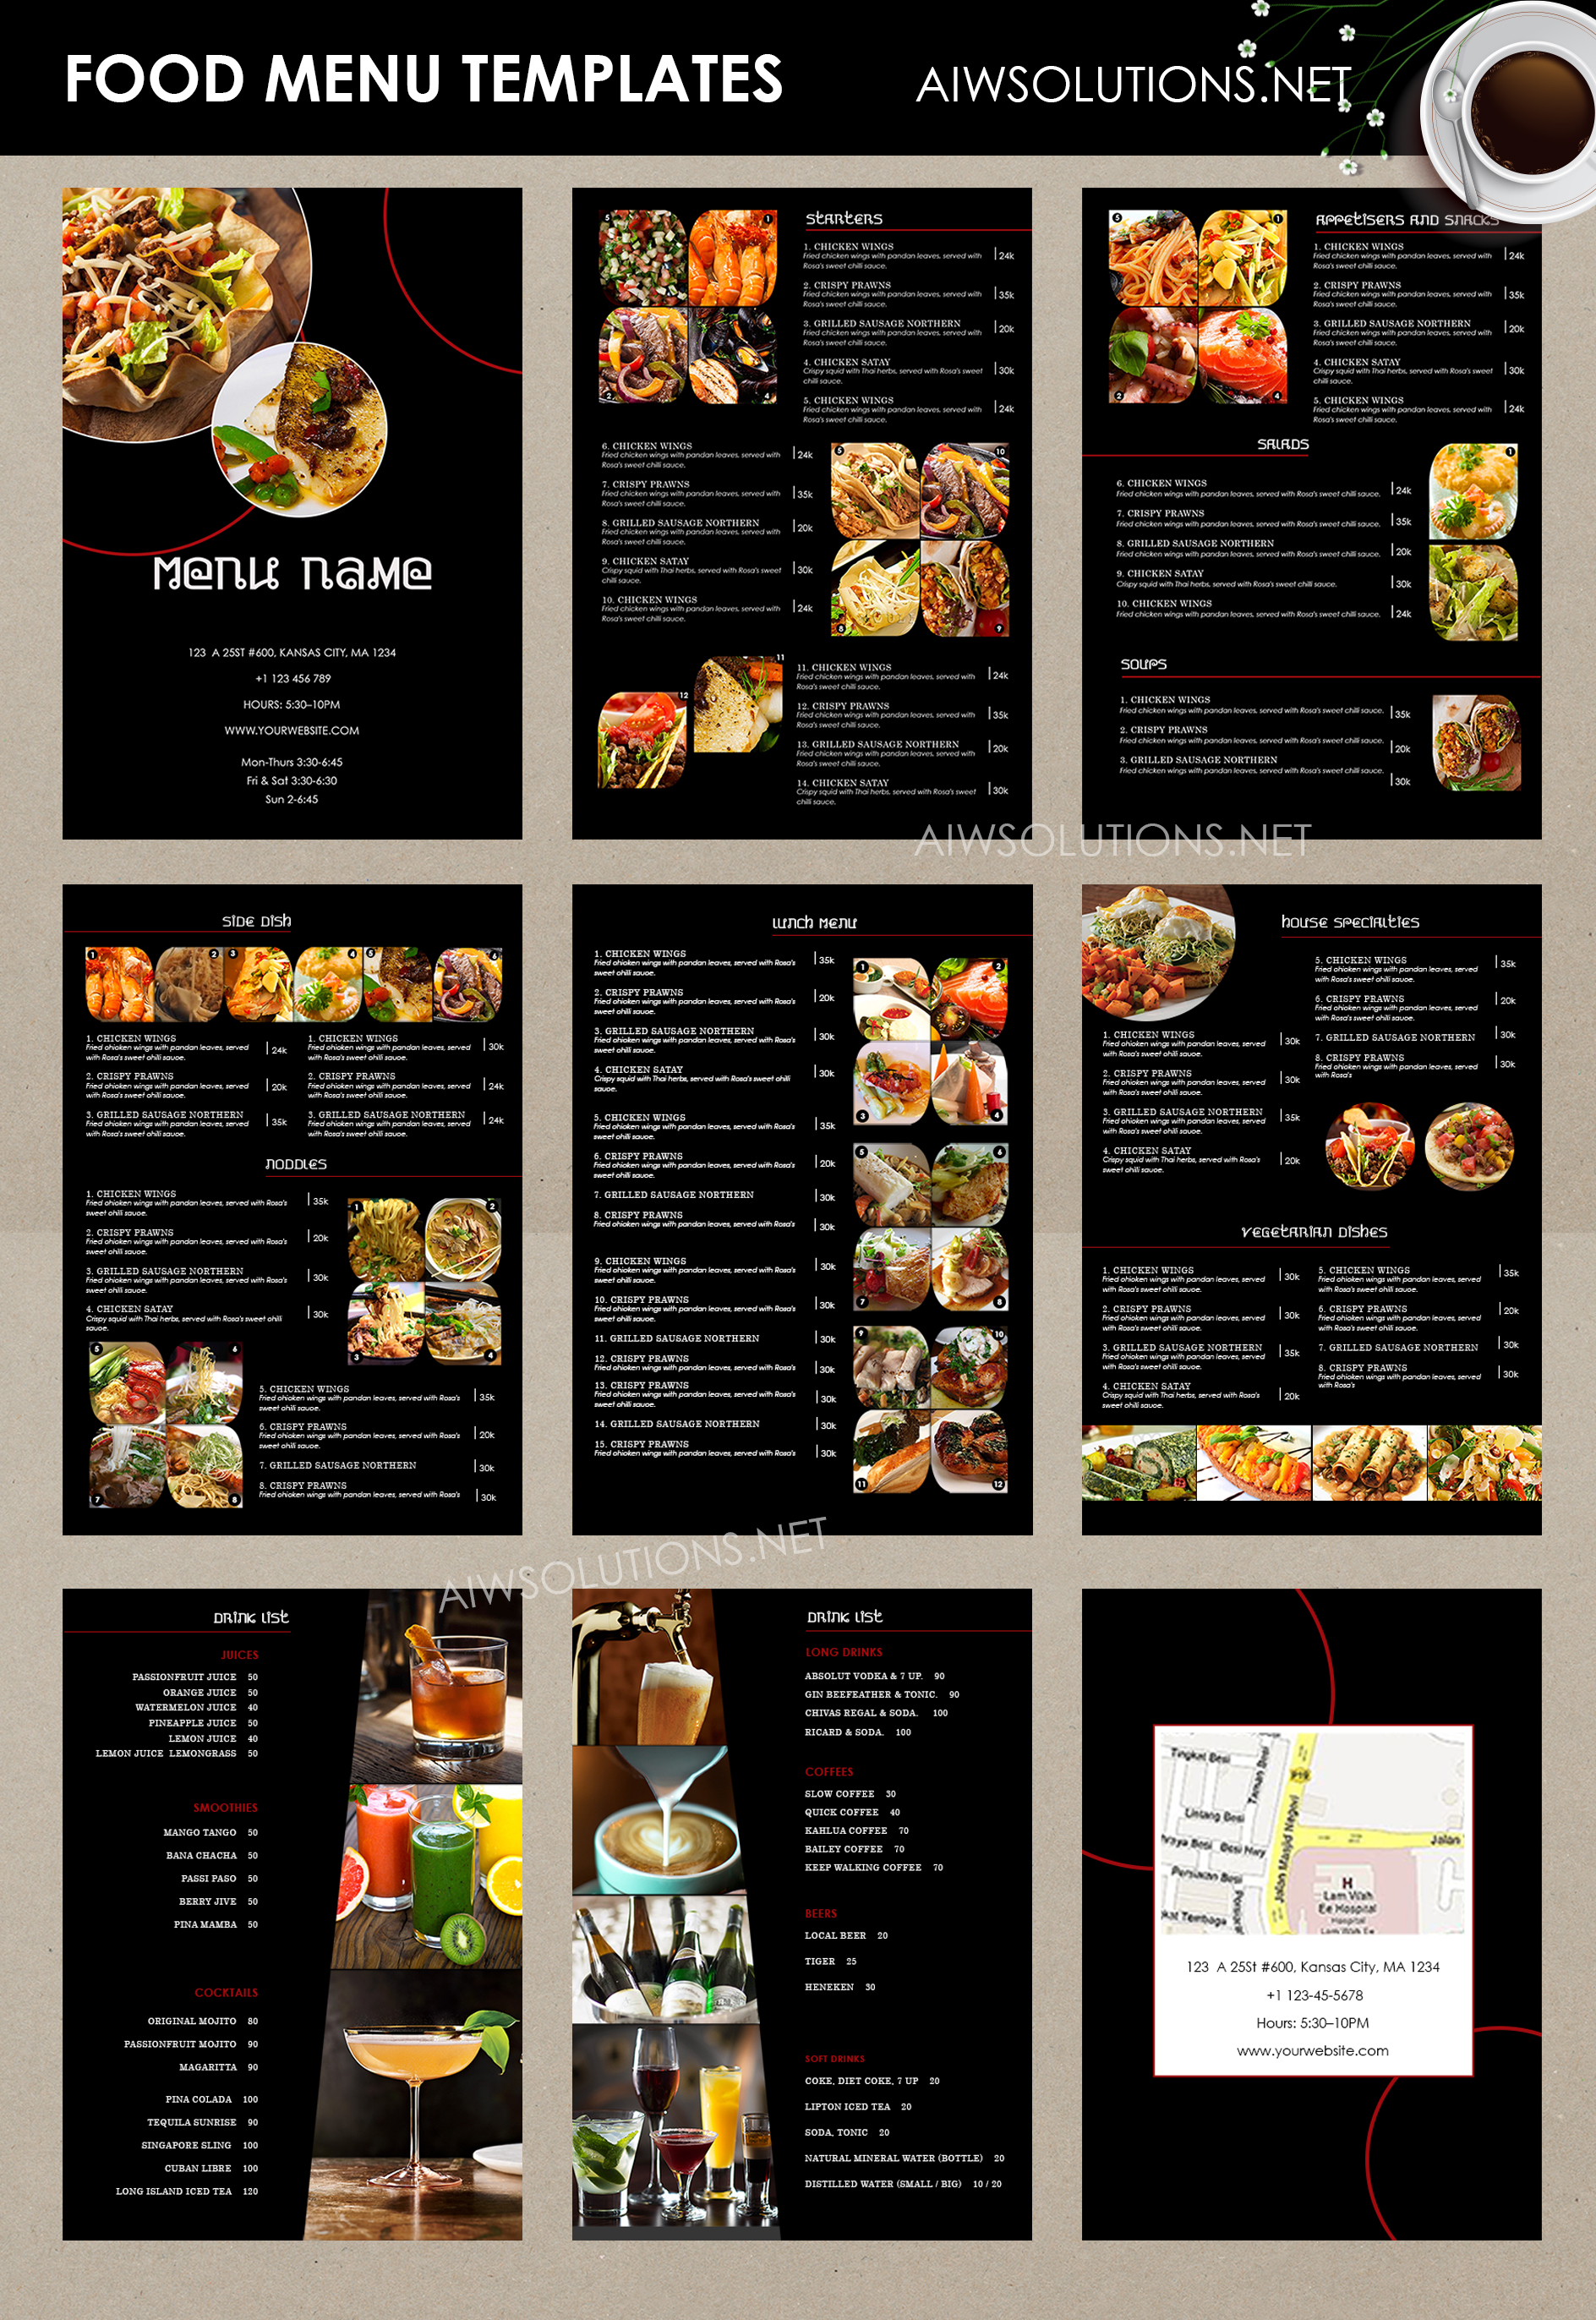 thai-food-menu-template.jpg